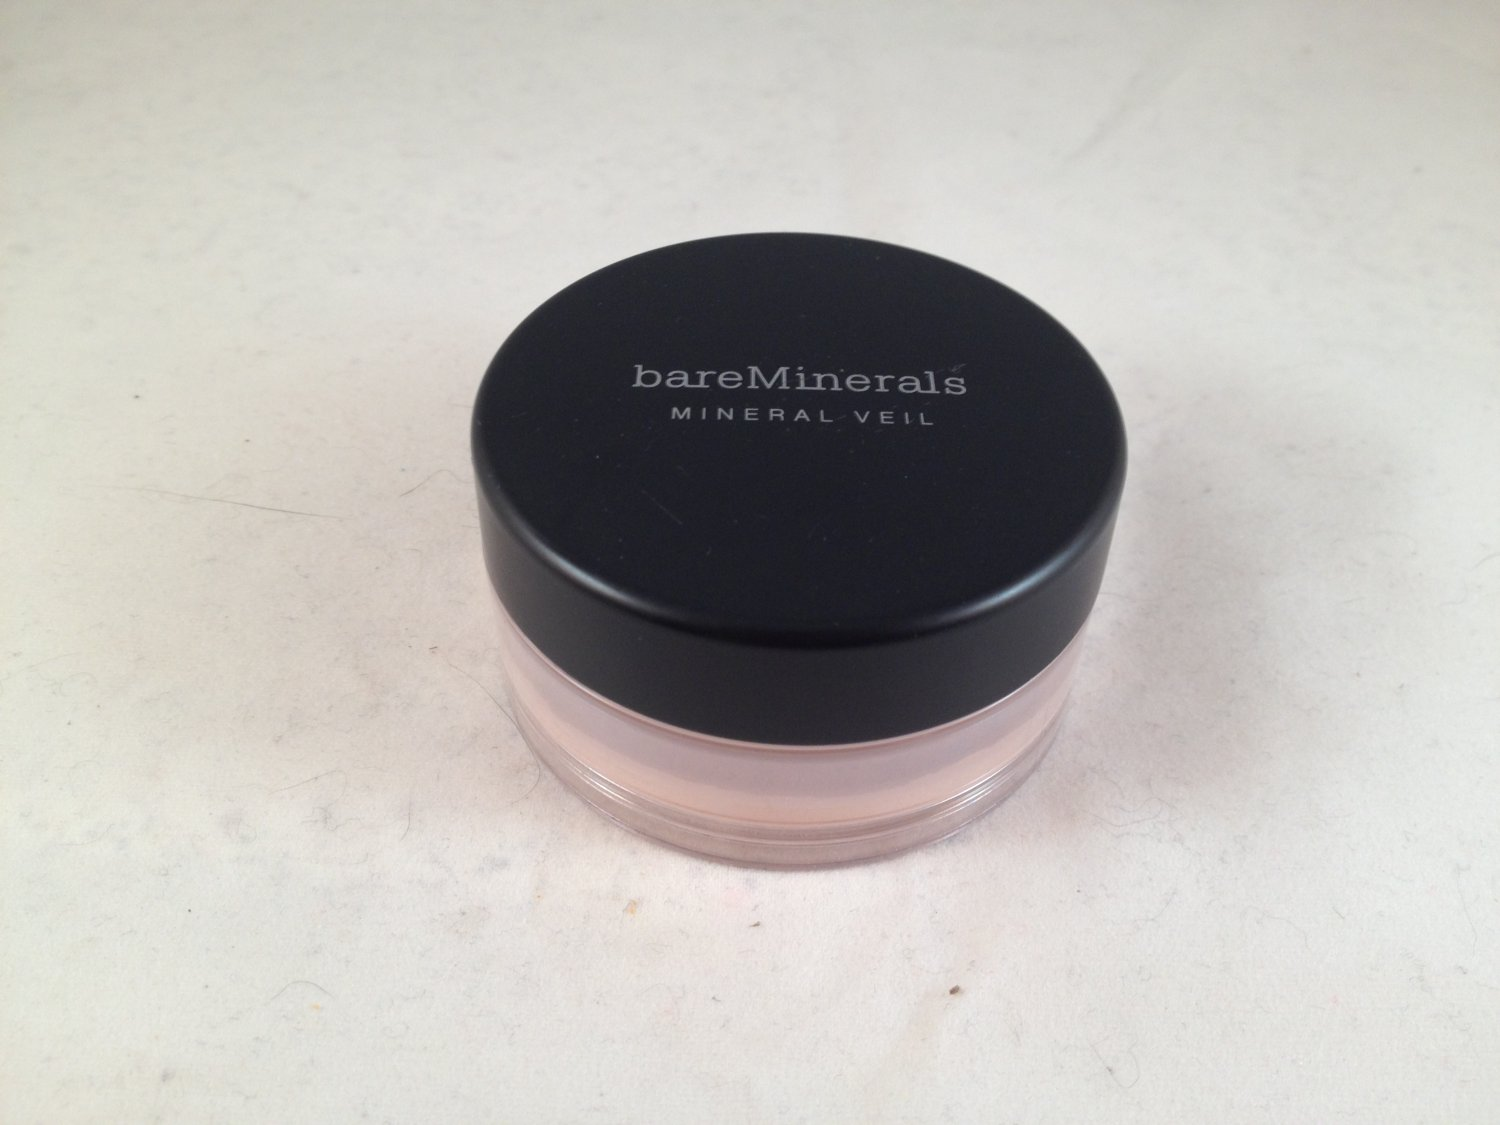 Bare Escentuals bareMinerals Original SPF 25 Mineral Veil finishing powder